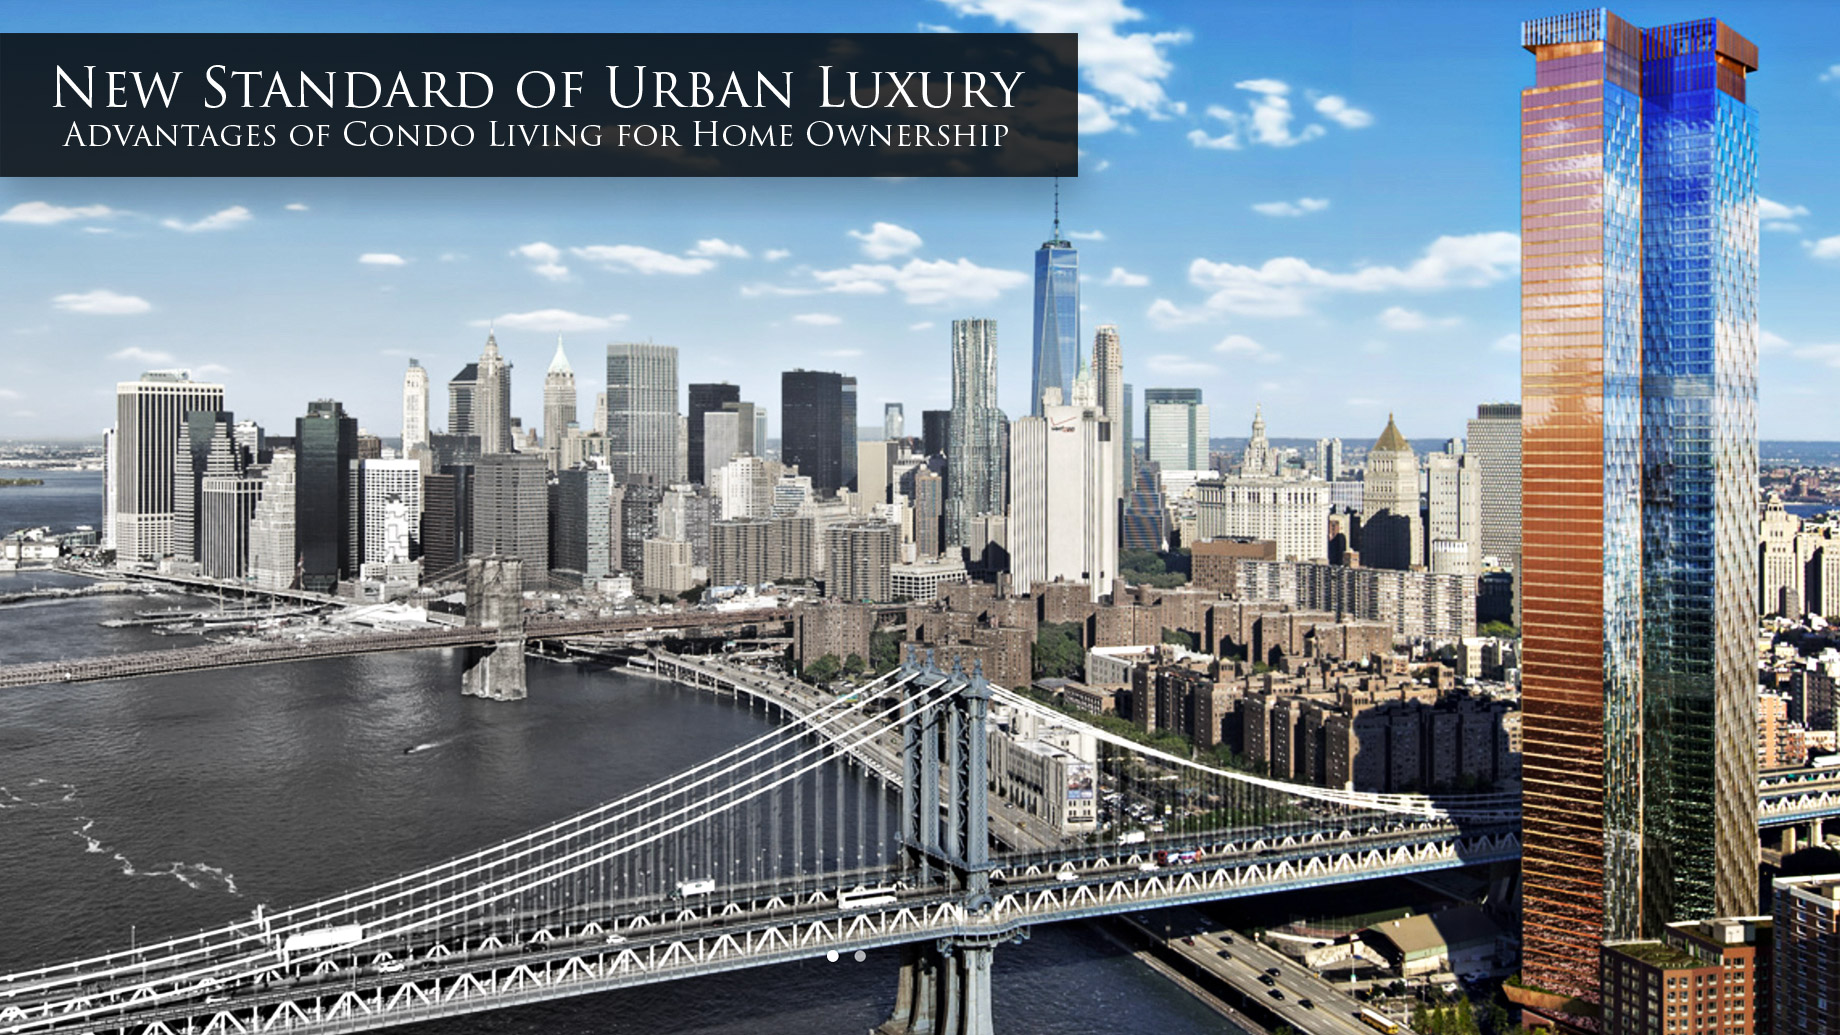 New Standard of Urban Luxury - Advantages of Condo Living for Home Ownership